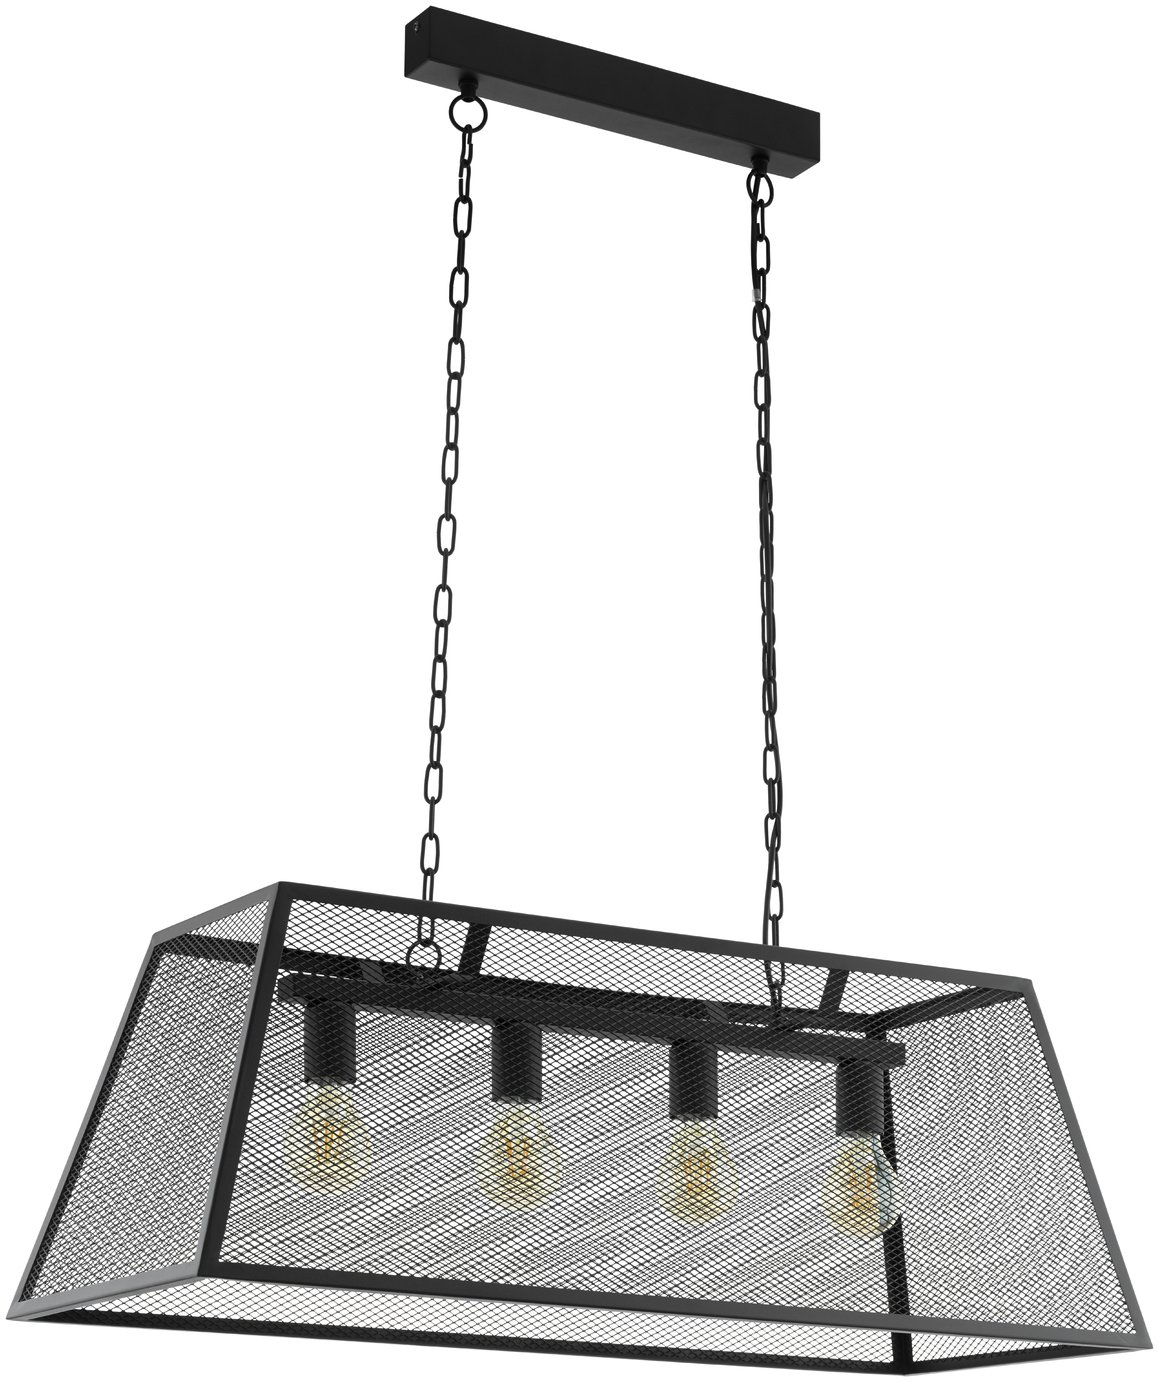 Image of Eglo Amesbury 4 Light Pendant Light - Black